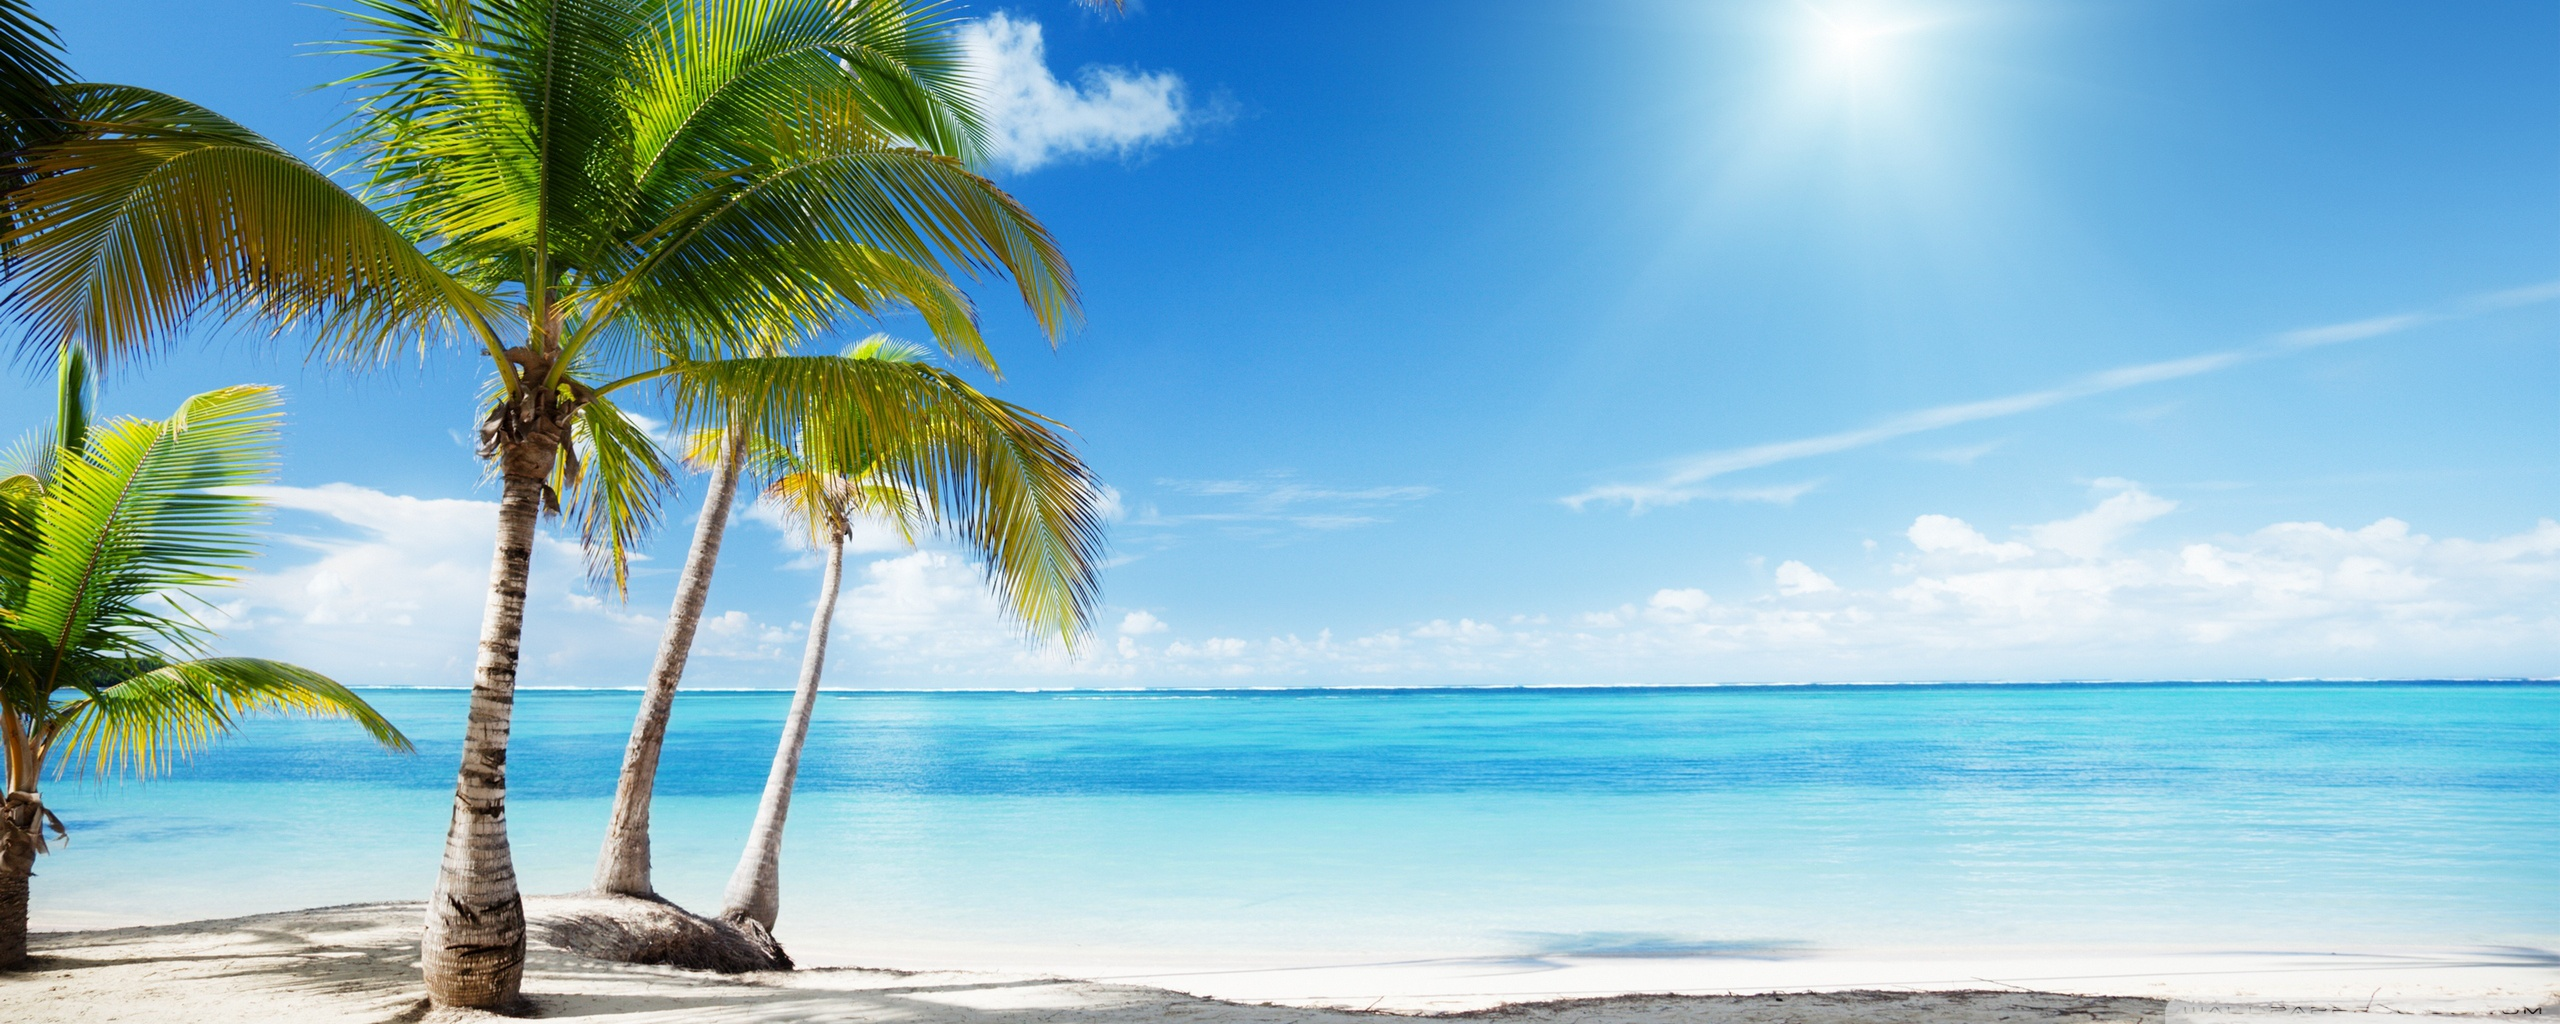 3 Monitor Chair Tropical Beach Paradise Wallpaper 2560x1024 32271